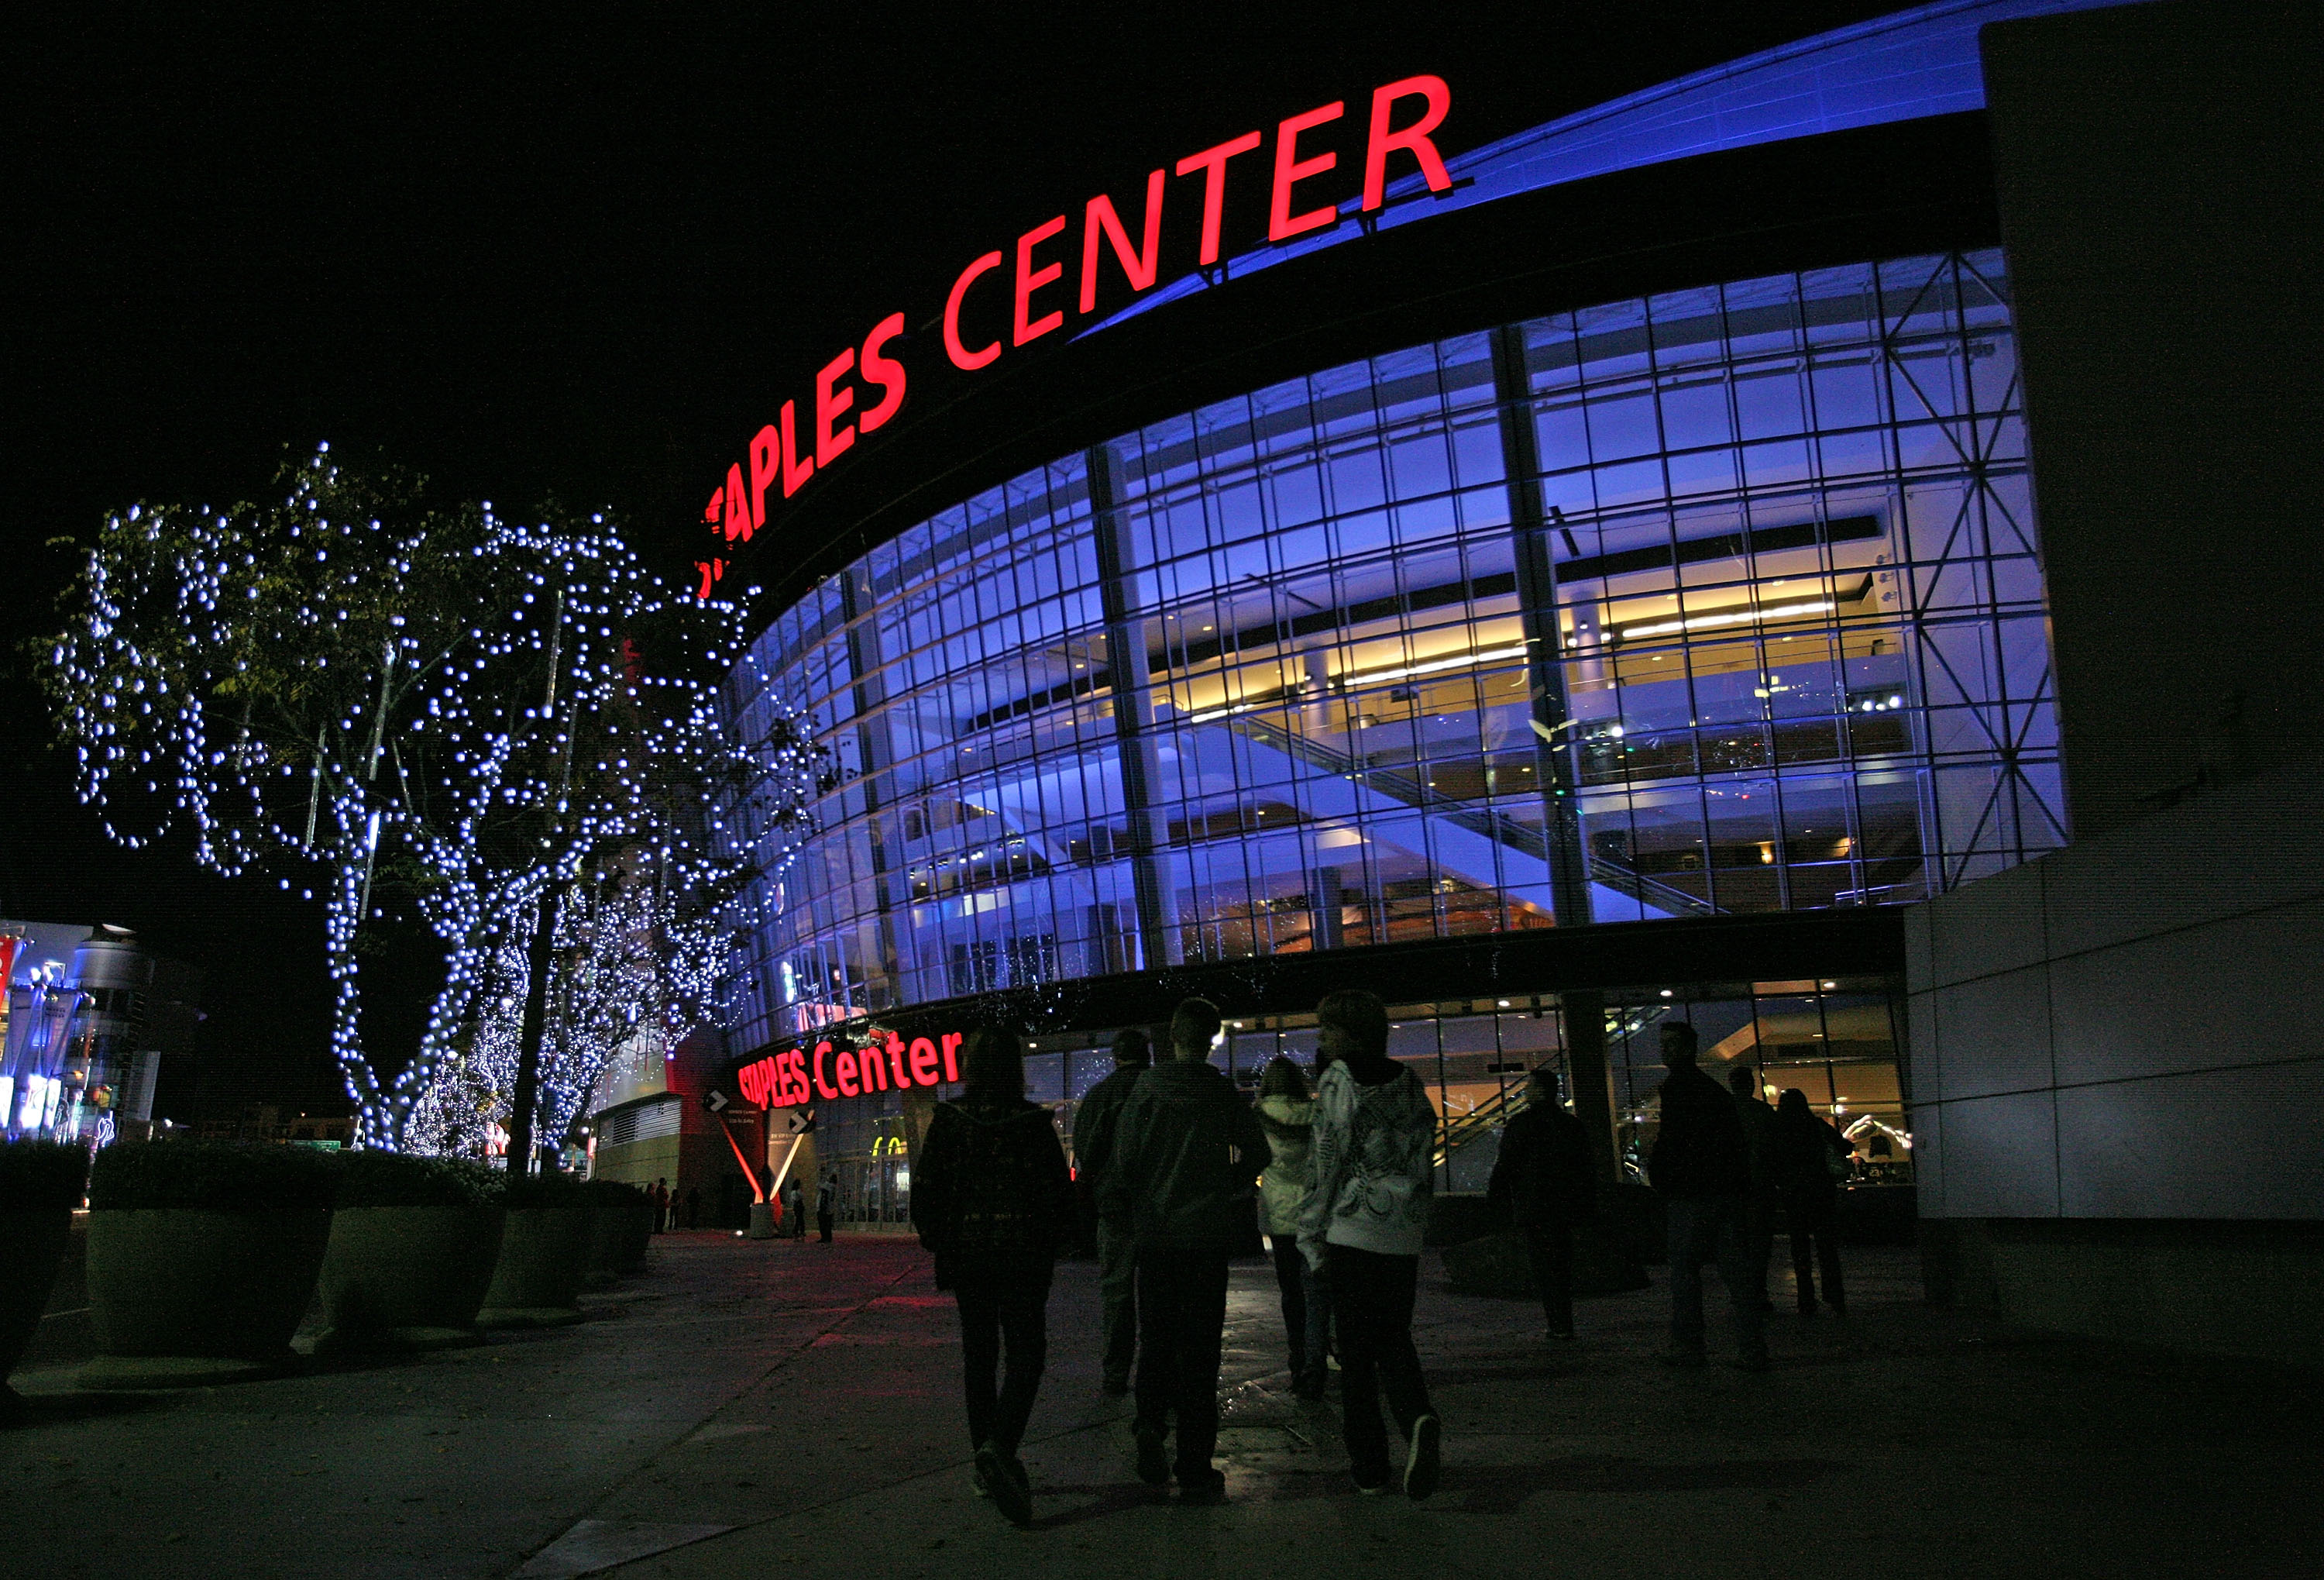 LOS ANGELES, CA - JANUARY 10:  Fans arrive for the game between the New Jersey Devils and the Los Angeles Kings on January 10, 2009 at the Staples Center in Los Angeles, California. (Photo by Bruce Bennett/Getty Images)